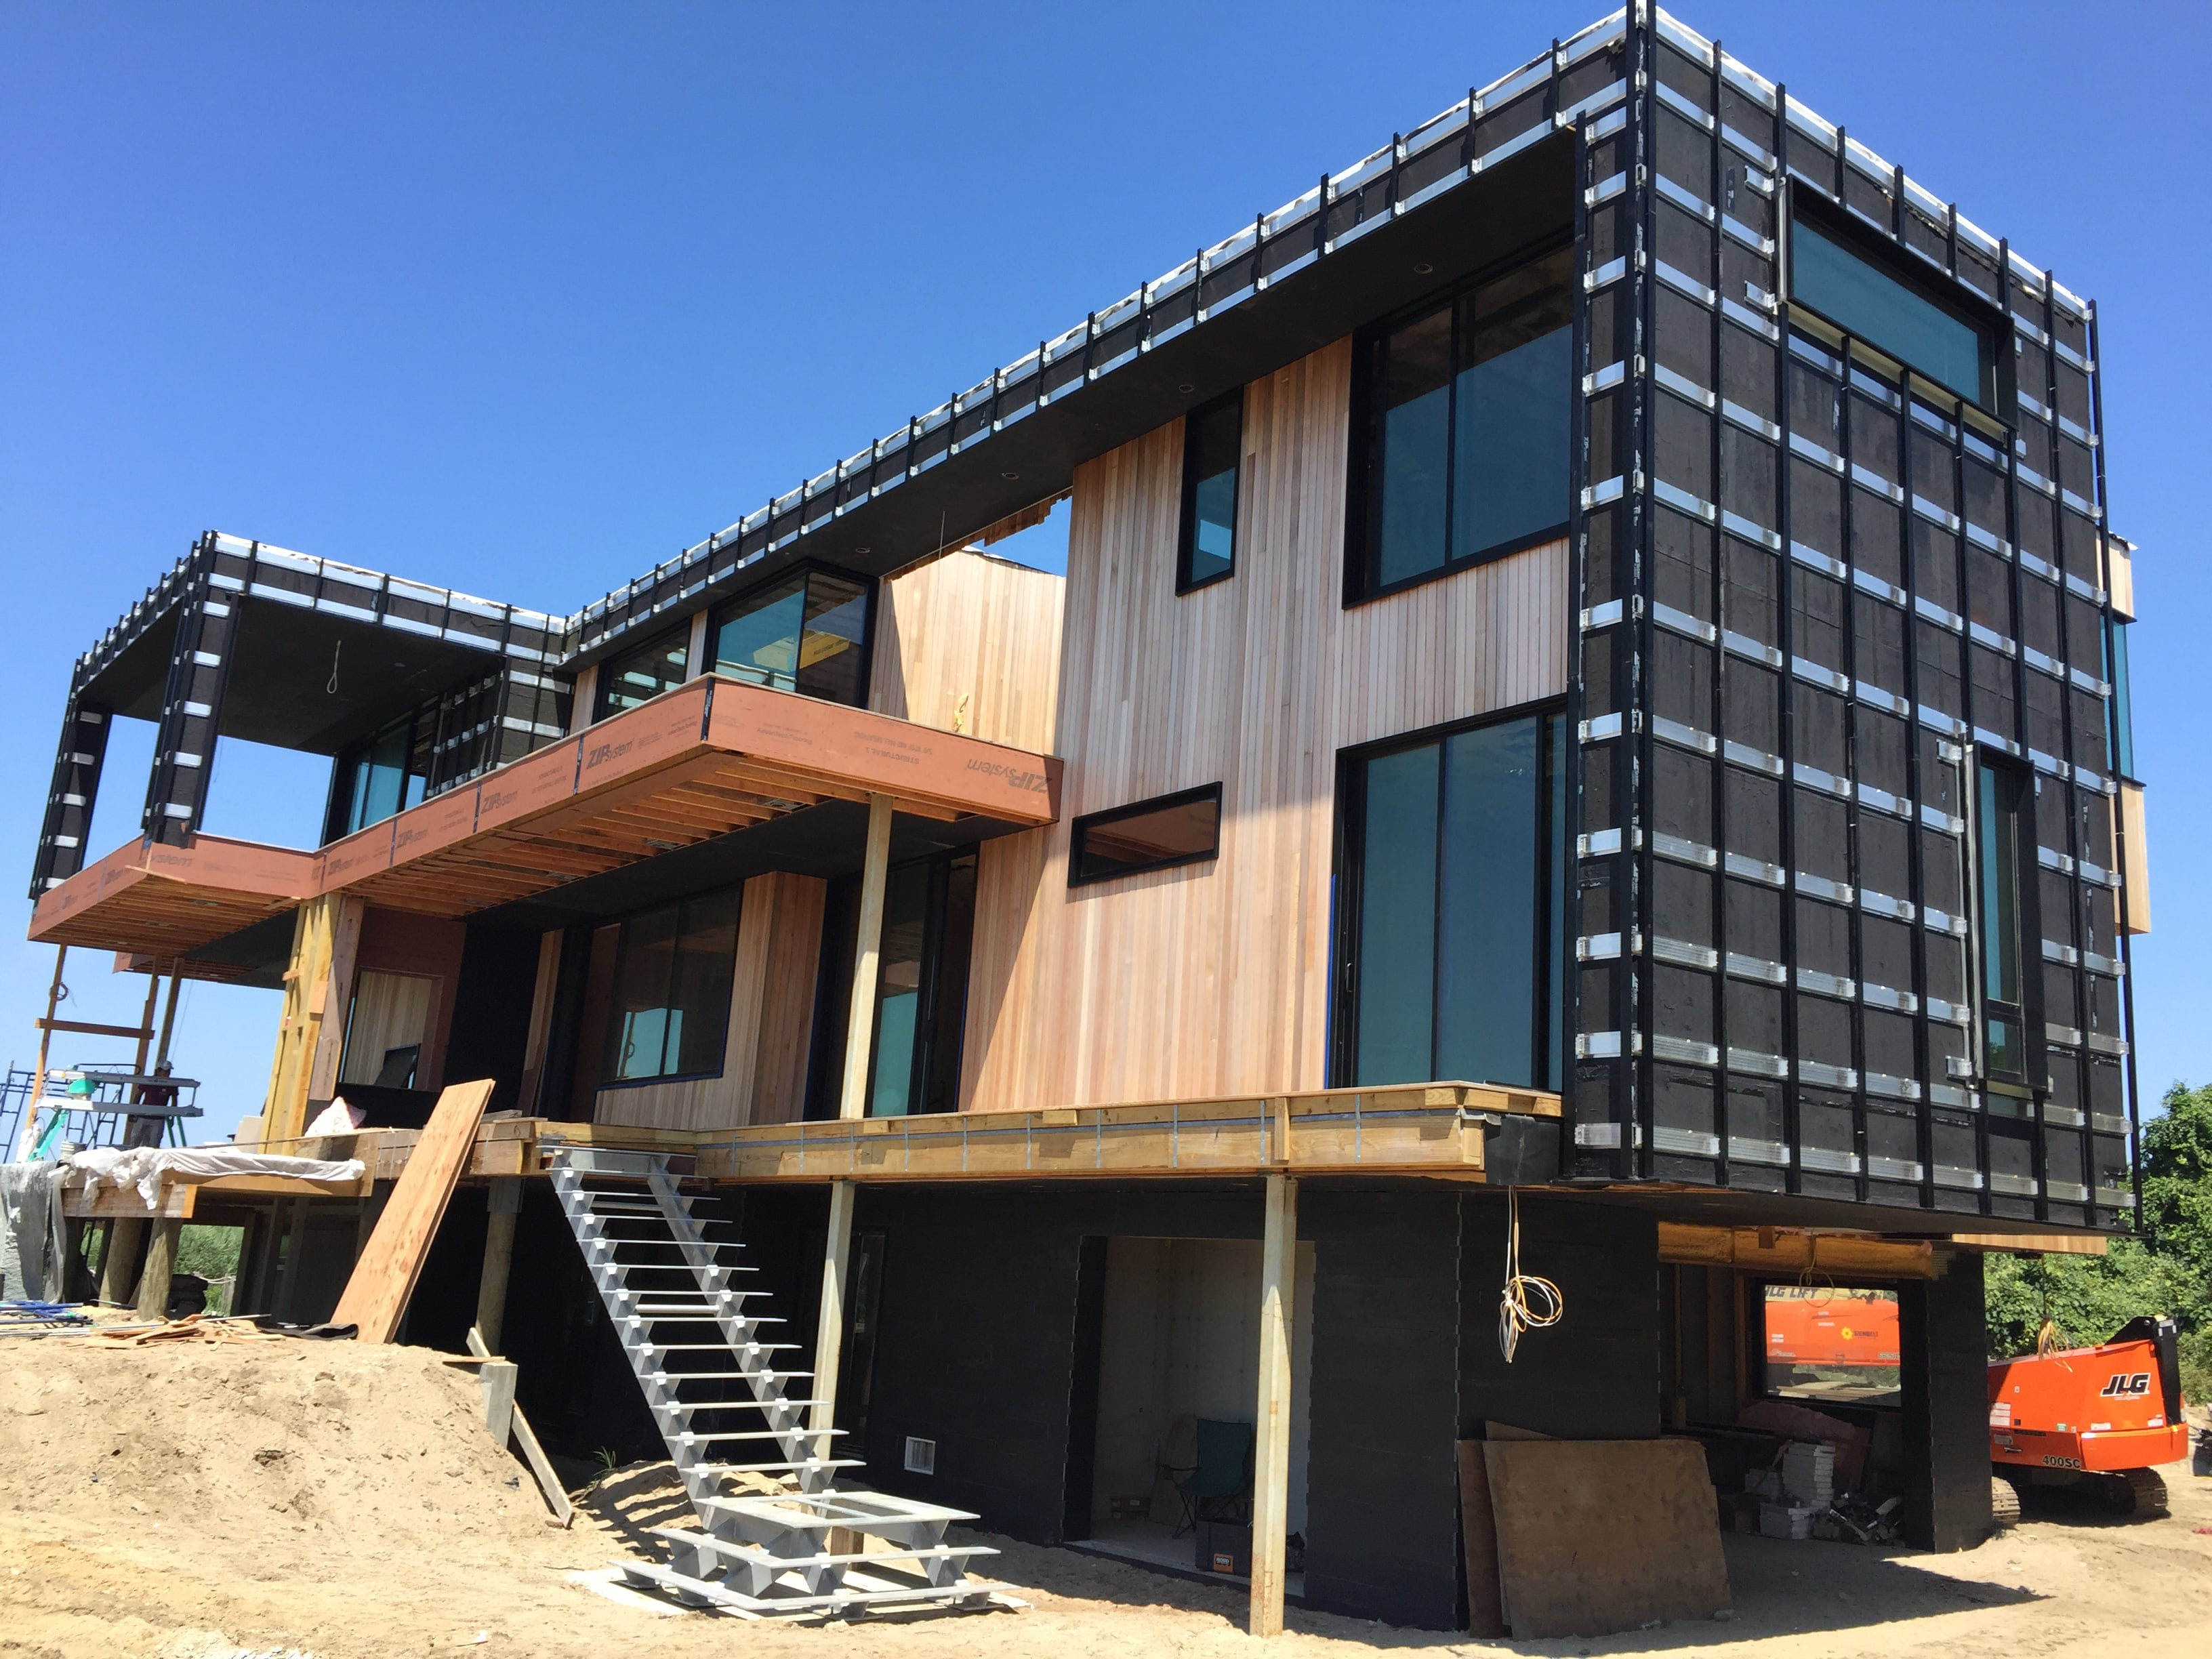 Under Construction Home in the Hamptons using Ebony Planc on the lower lever exterior facade